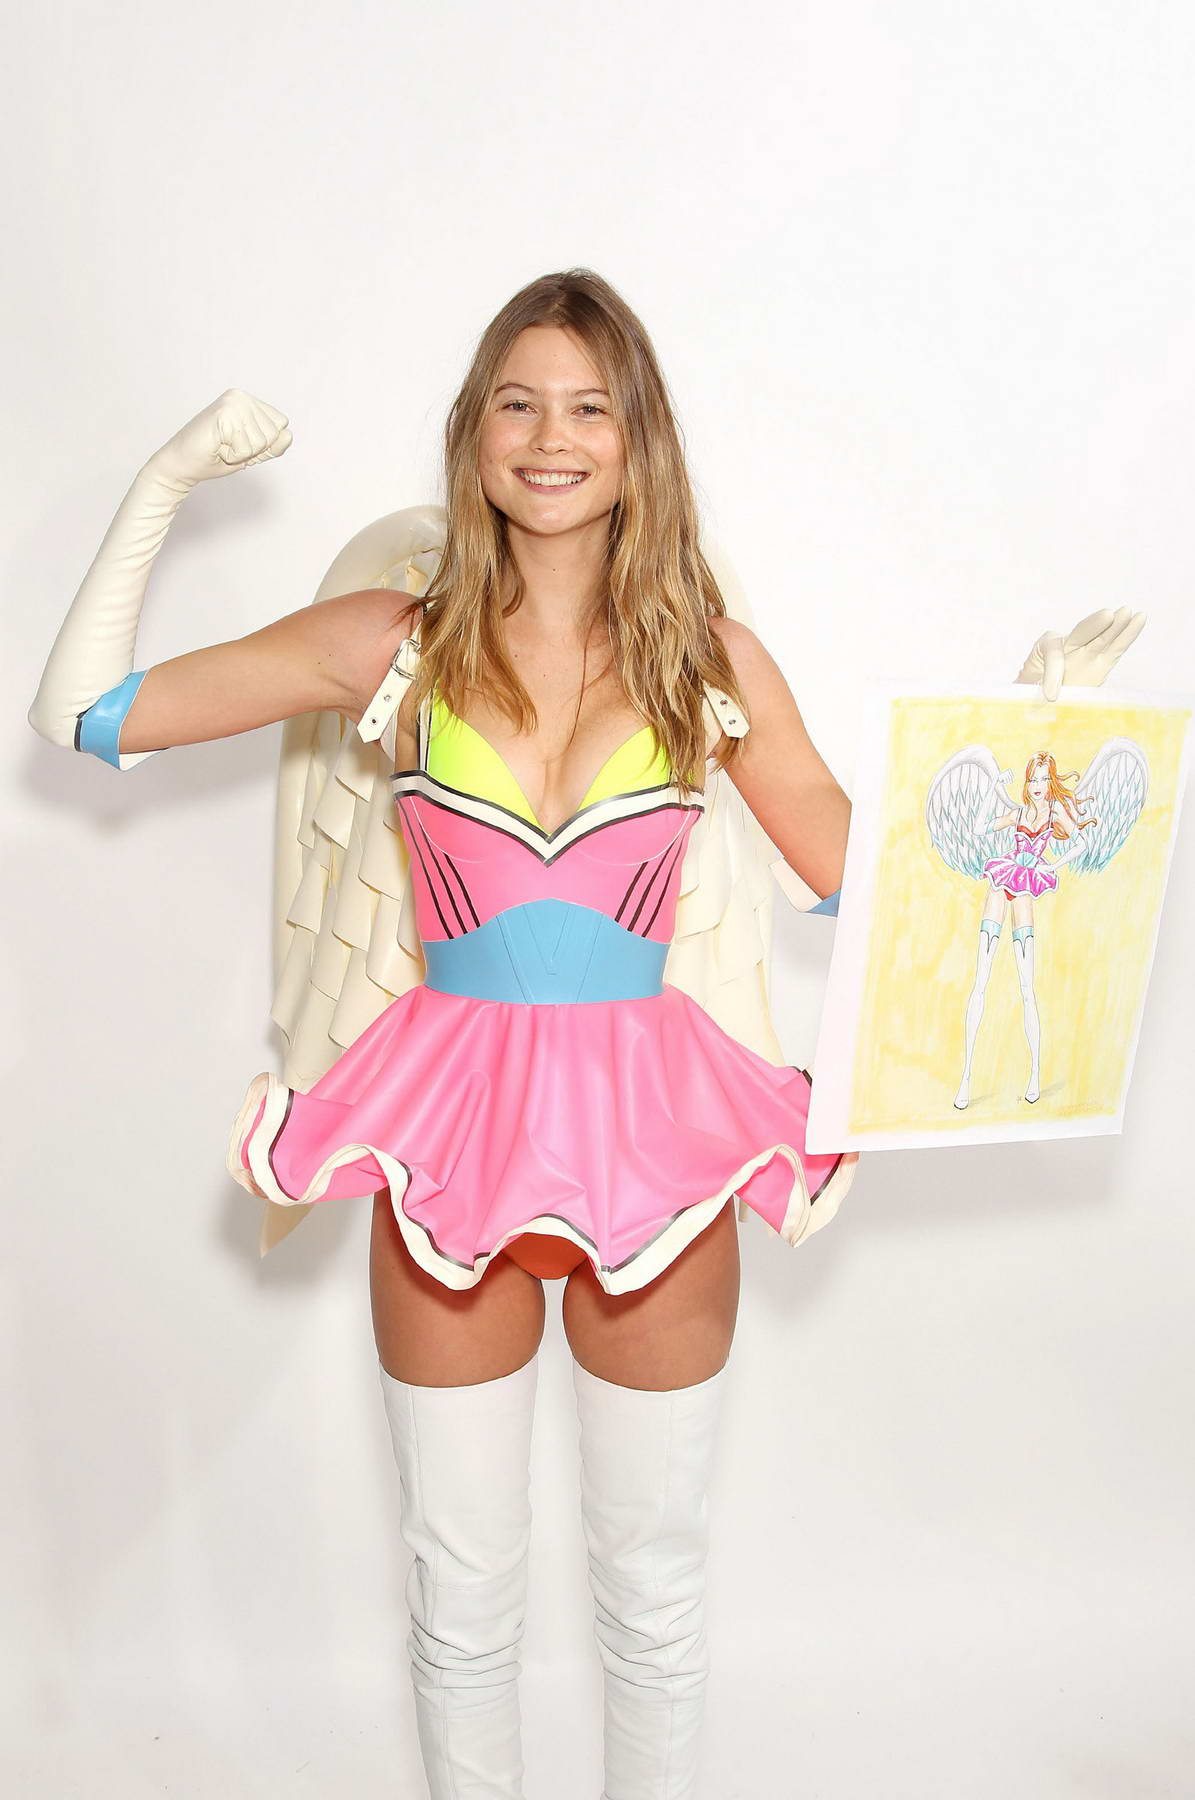 Victorias secret fashion show 2011 - Behati Prinsloo At Victoria S Secret Fashion Show 2011 Fittings